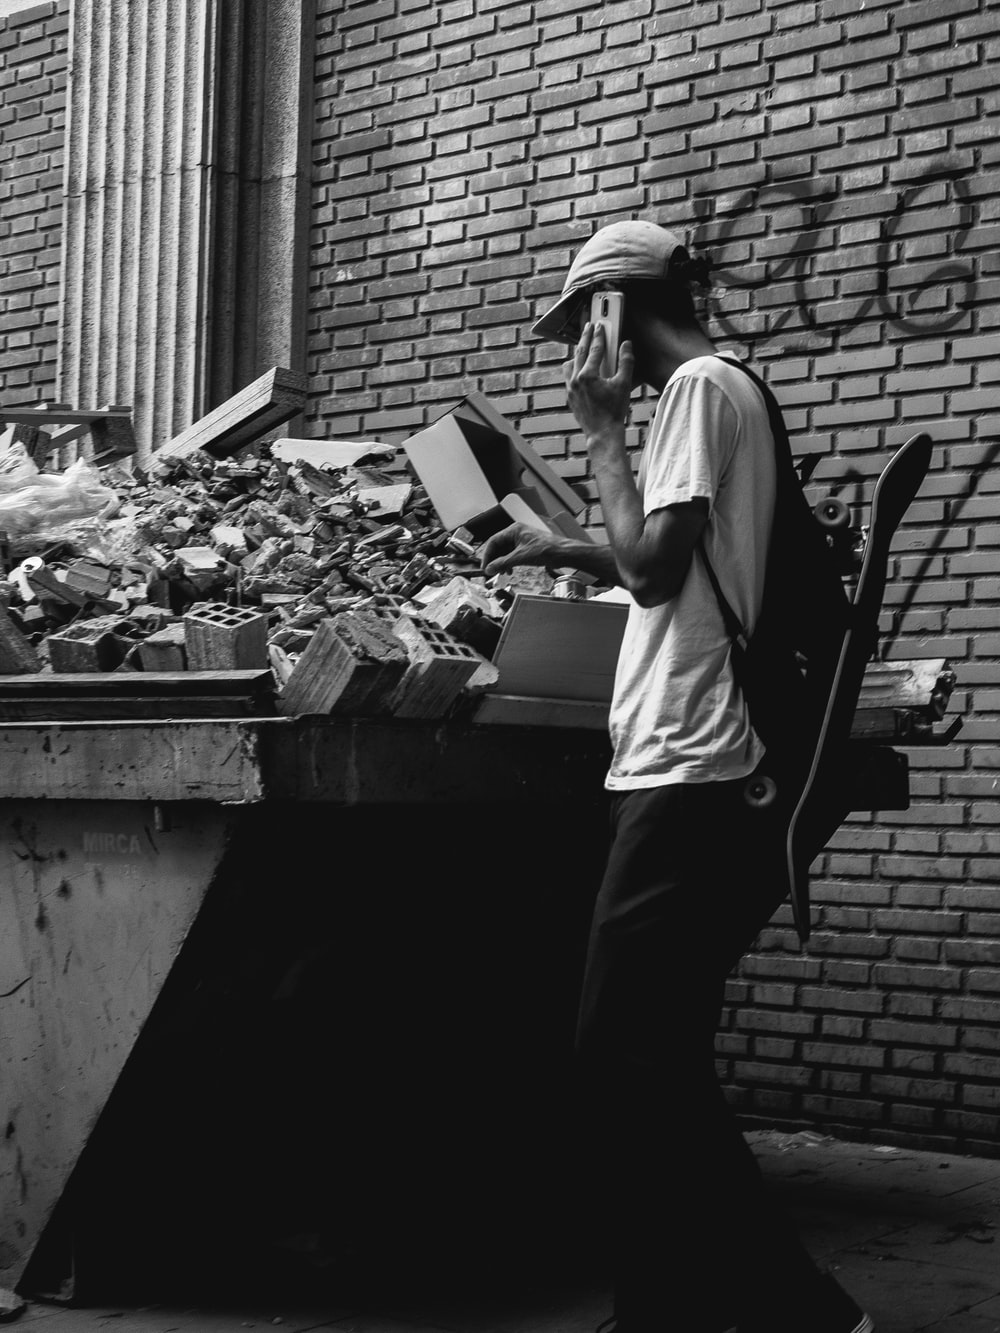 grayscale photo of person using Android smartphone